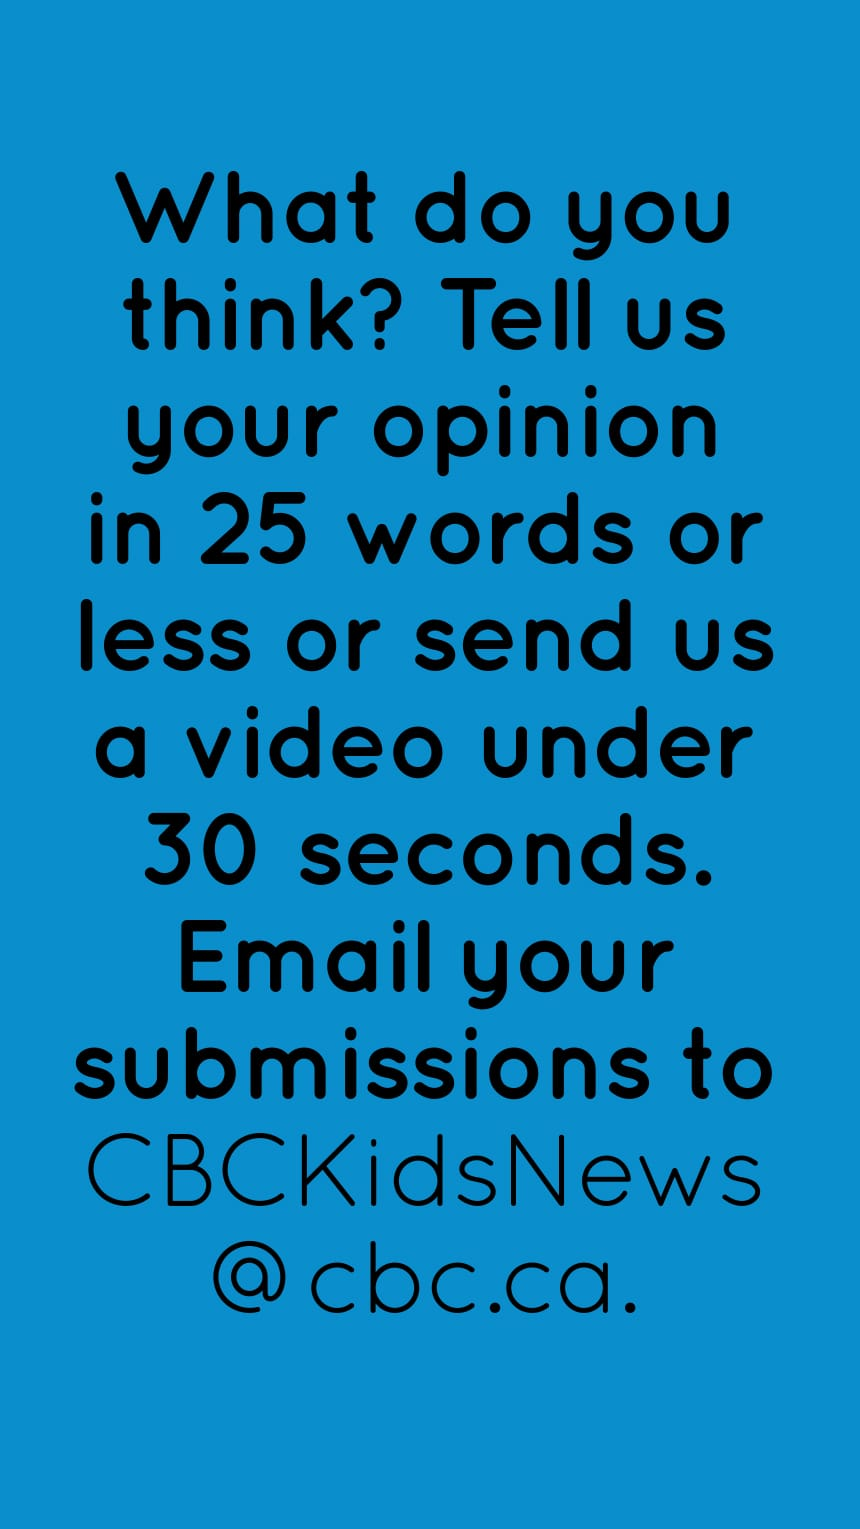 What do you think? Tell us your opinion in 25 words or less or send us a video under 30 seconds. Email your submissions to CBCKidsNews@cbc.ca.